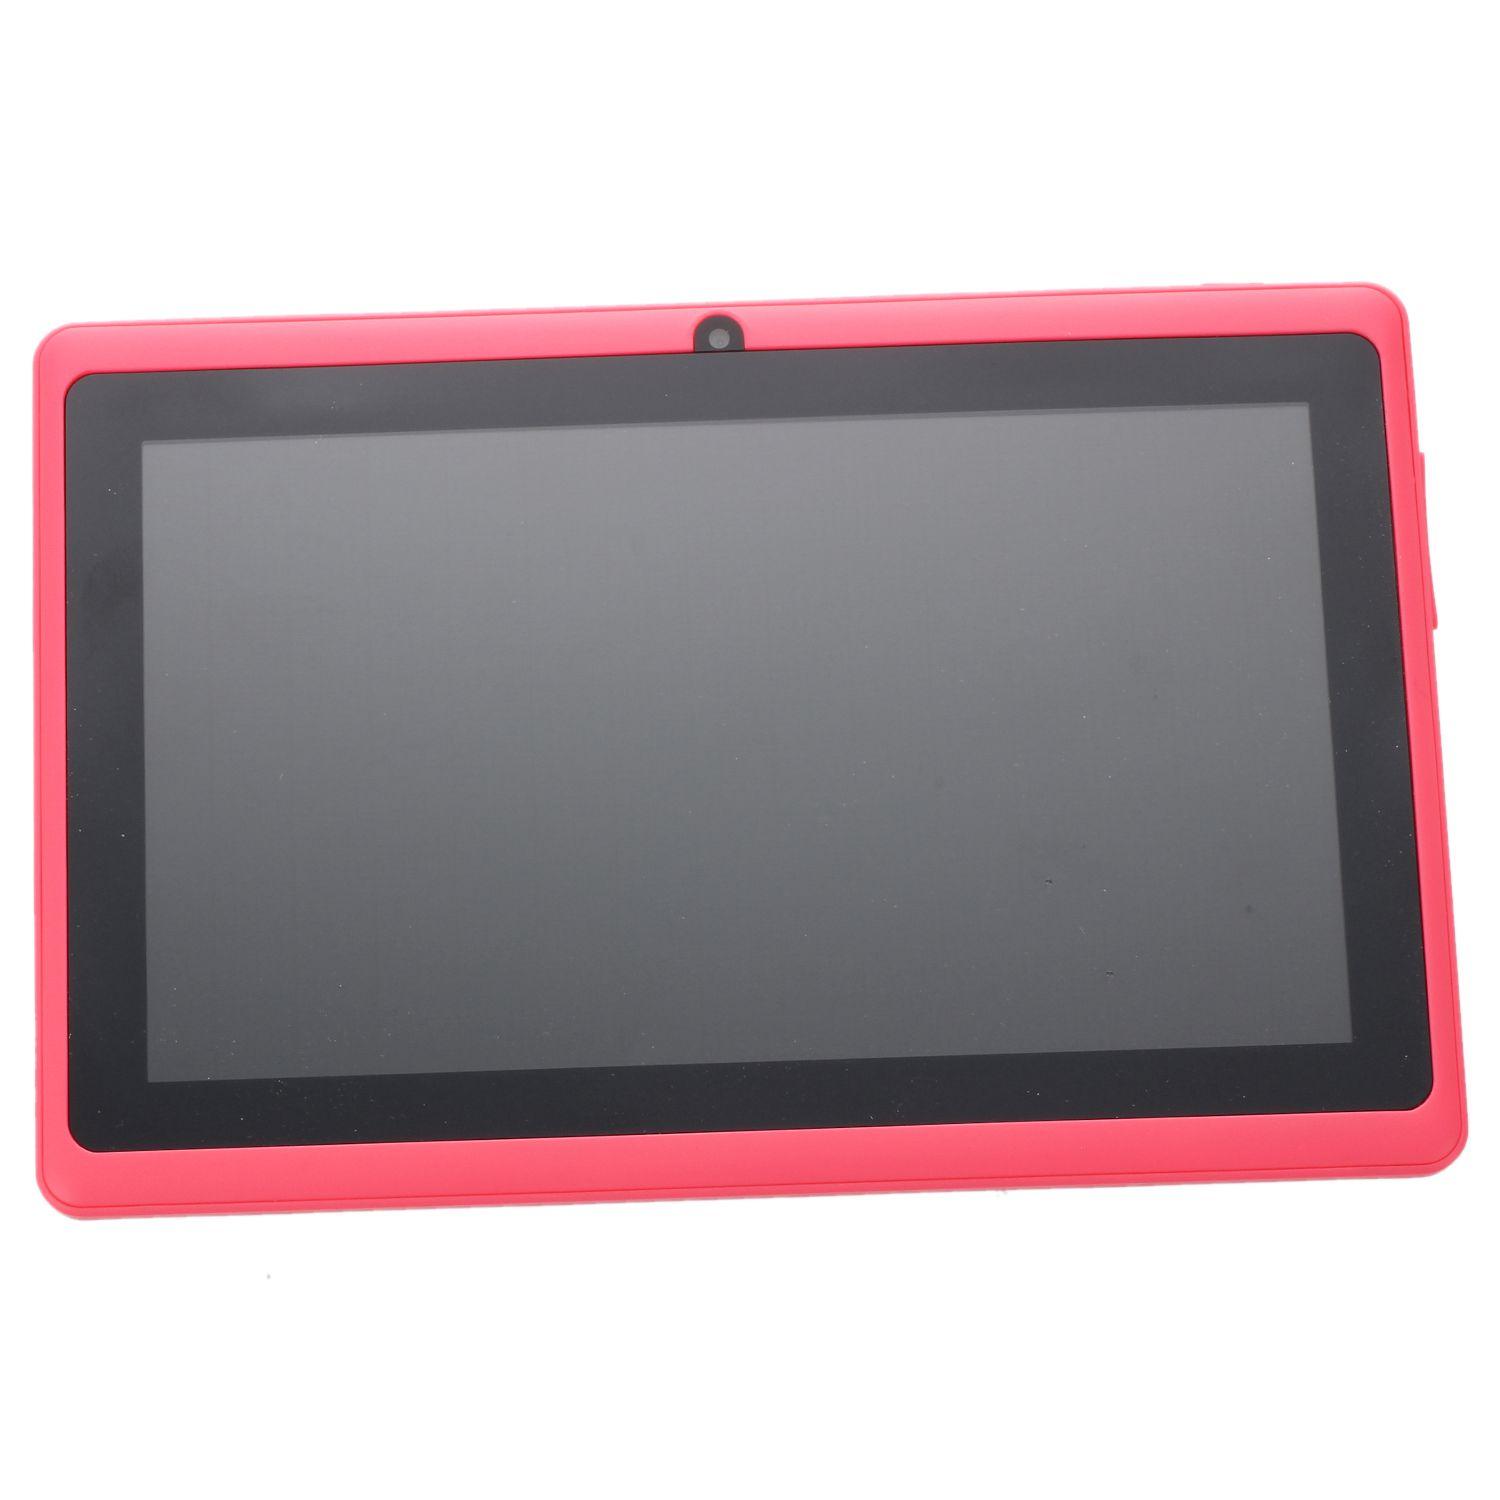 7 Inch Android Google Tablet PC 4.2.2 8GB 512MB DDR3 Quad-Core Camera Capacitive Touch Screen 1.5GHz WiFi